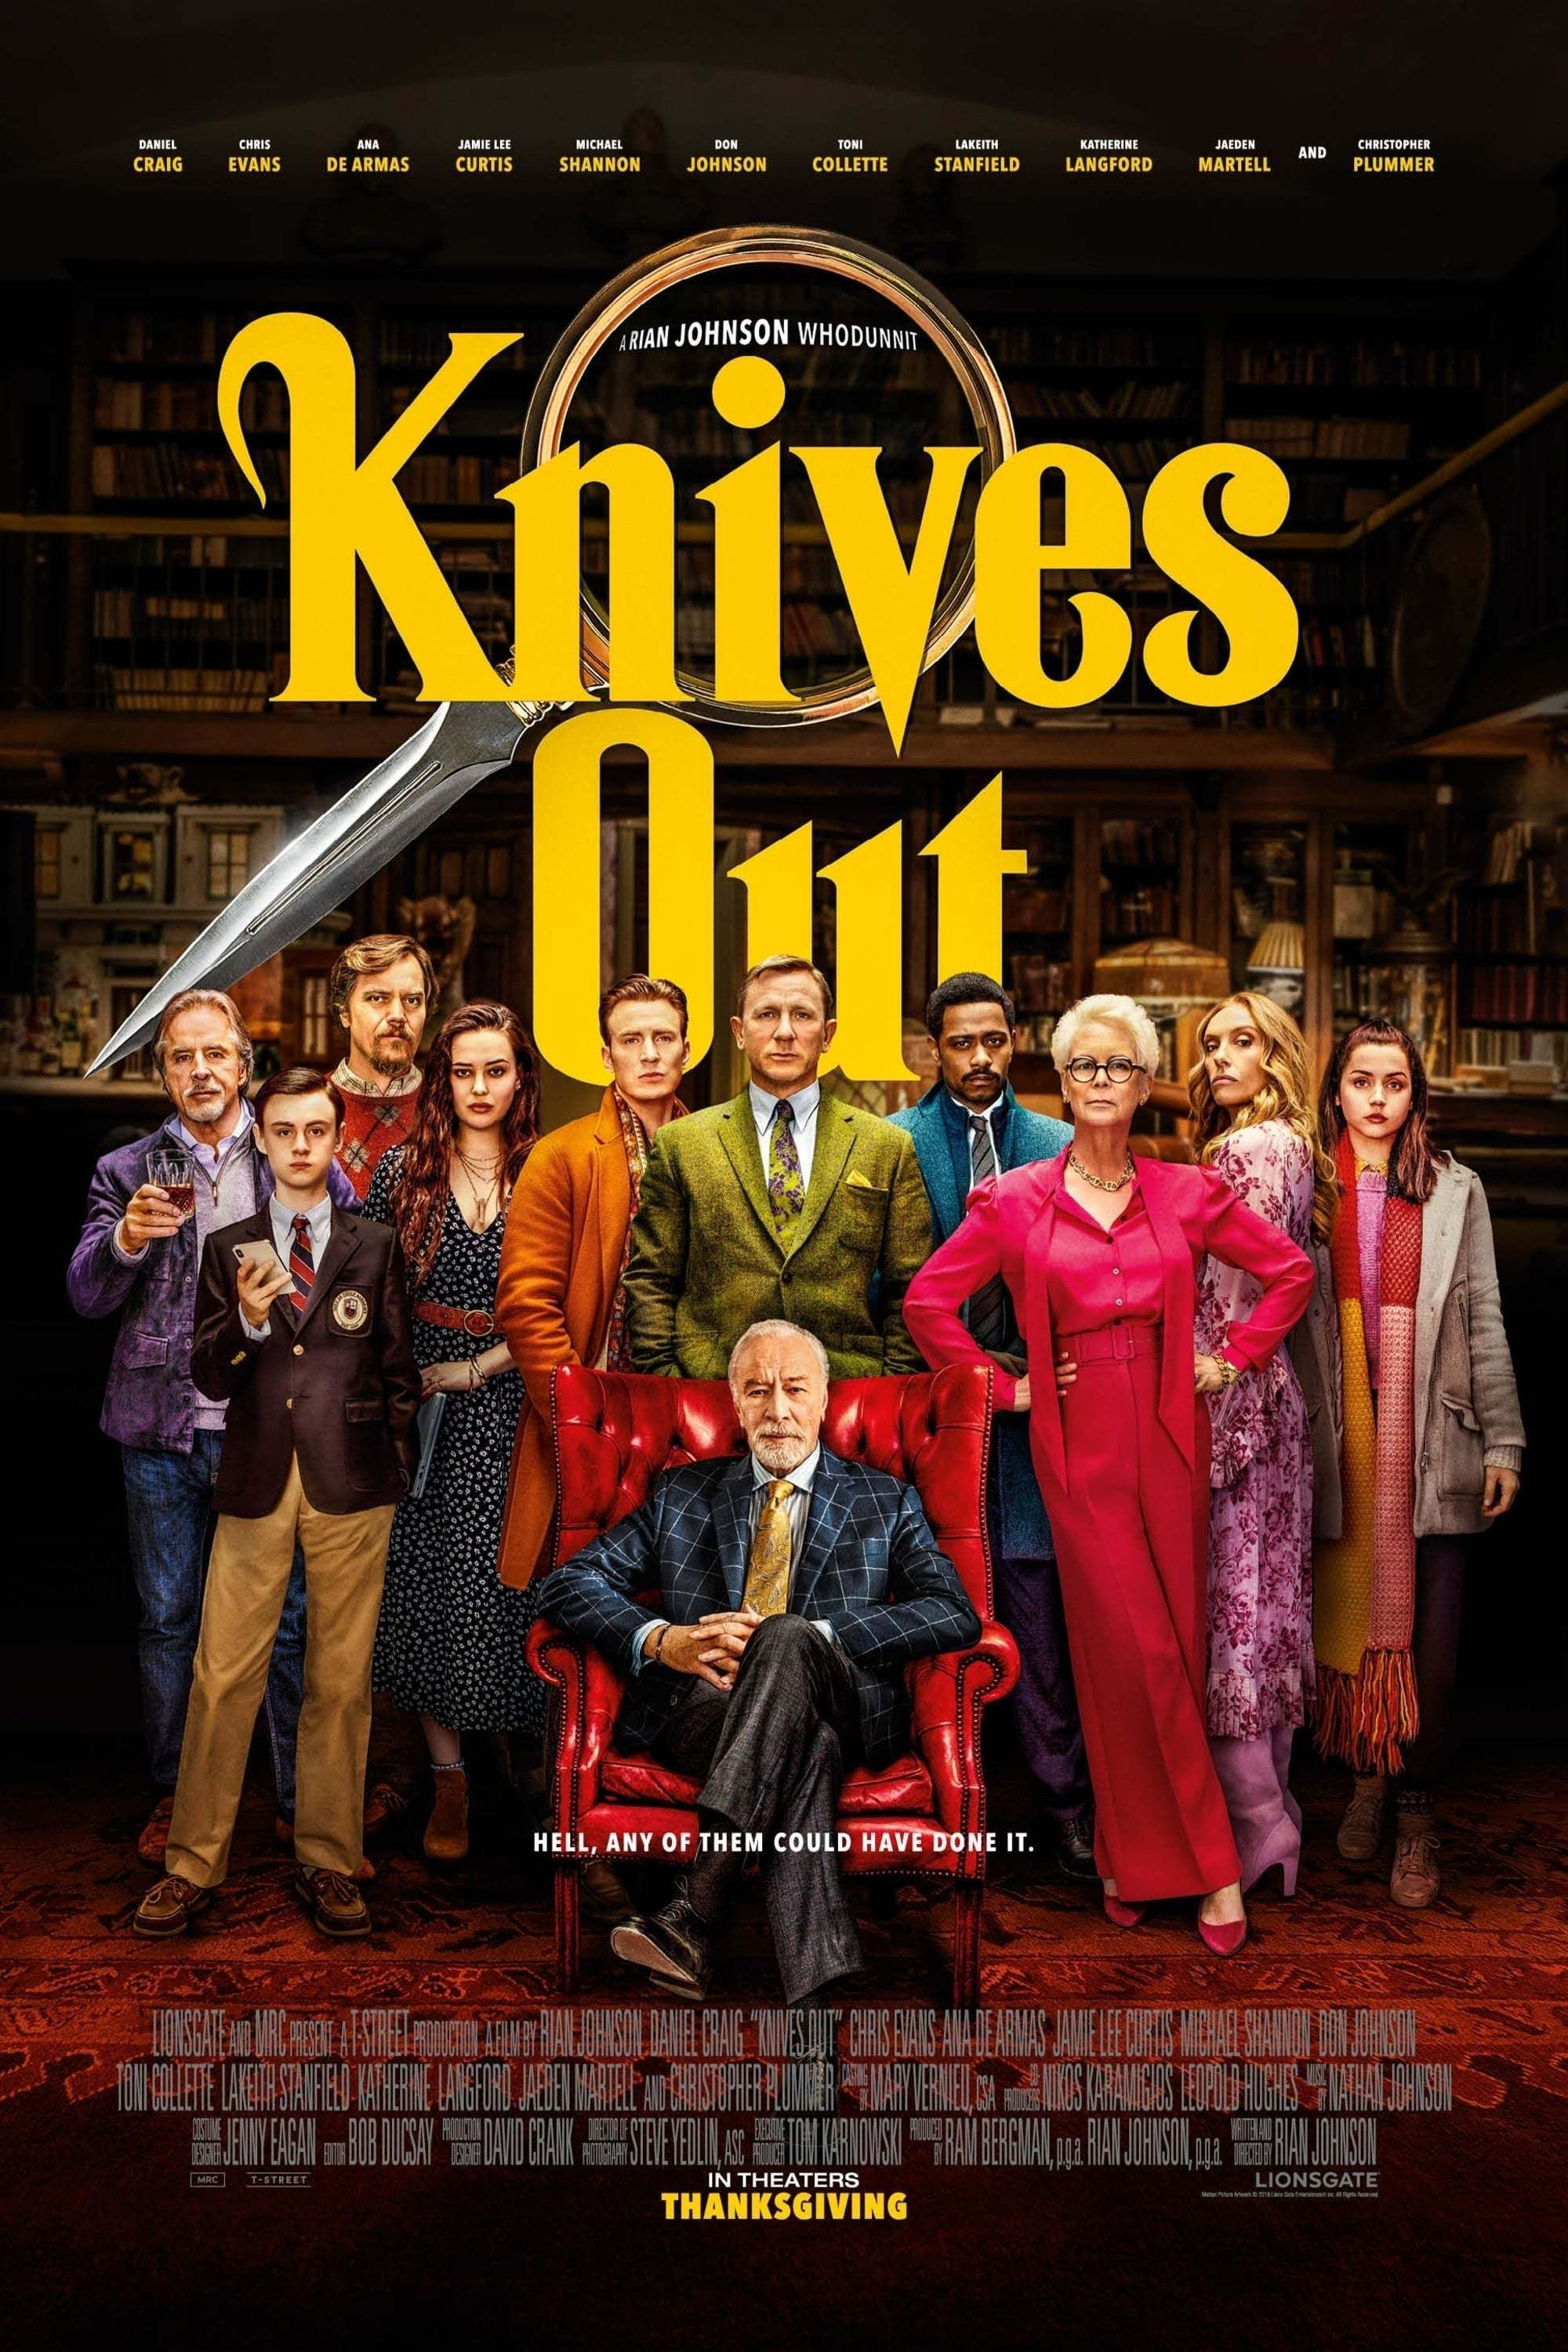 """Condition: Very Good to Excellent. Never folded! Free shipping within the UK. A low flat rate for the rest of the world. Size: 69 cm x 102 cm (27 in x 40 in) A guaranteed original advance one sheet movie poster for Rian Johnson's superb 2019 'whodunnit' """"Knives Out"""", starring Daniel Craig as detective 'Benoit Blanc'. Johnson and Craig have succeeded in creating a new sleuth in the mould of Agatha Christie's timeless Poirot and Marple. Alongside Craig is an all-star cast including Chris Evans. Ja"""